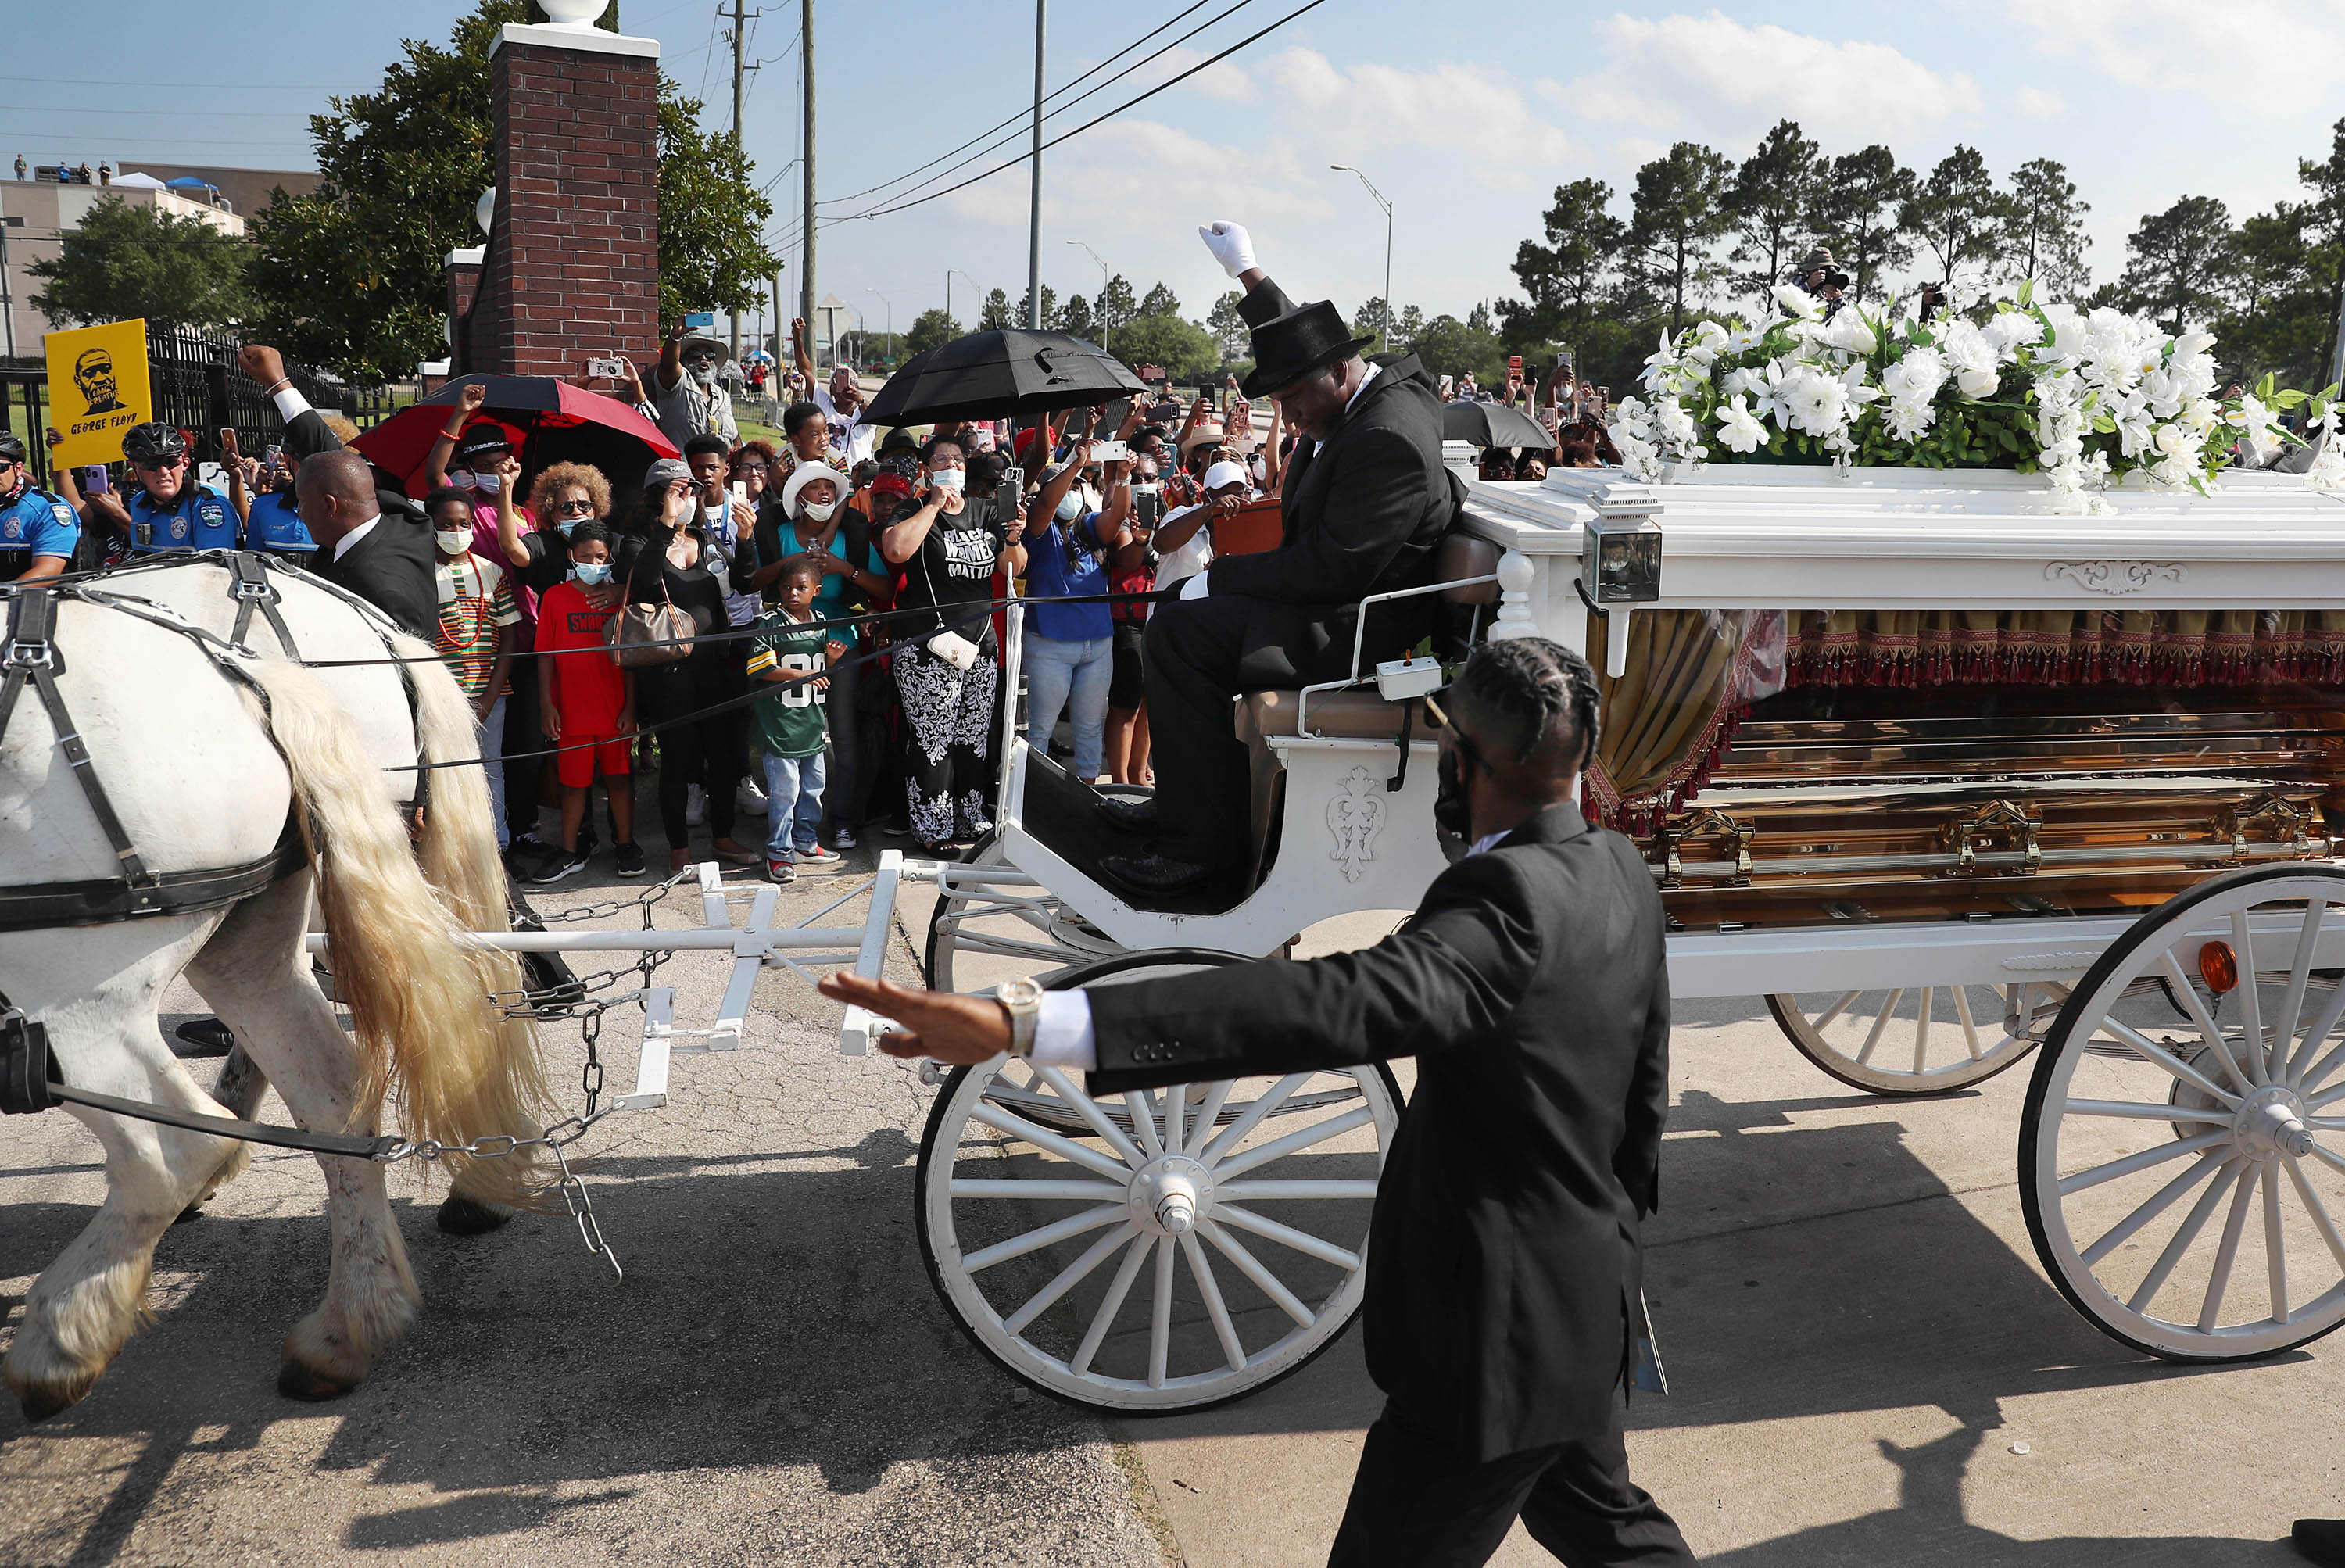 Terence Reed Jr. raises his arm as he drives his horse drawn hearse containing the remains of George Floyd into the Houston Memorial Gardens cemetery in Houston on June 9.